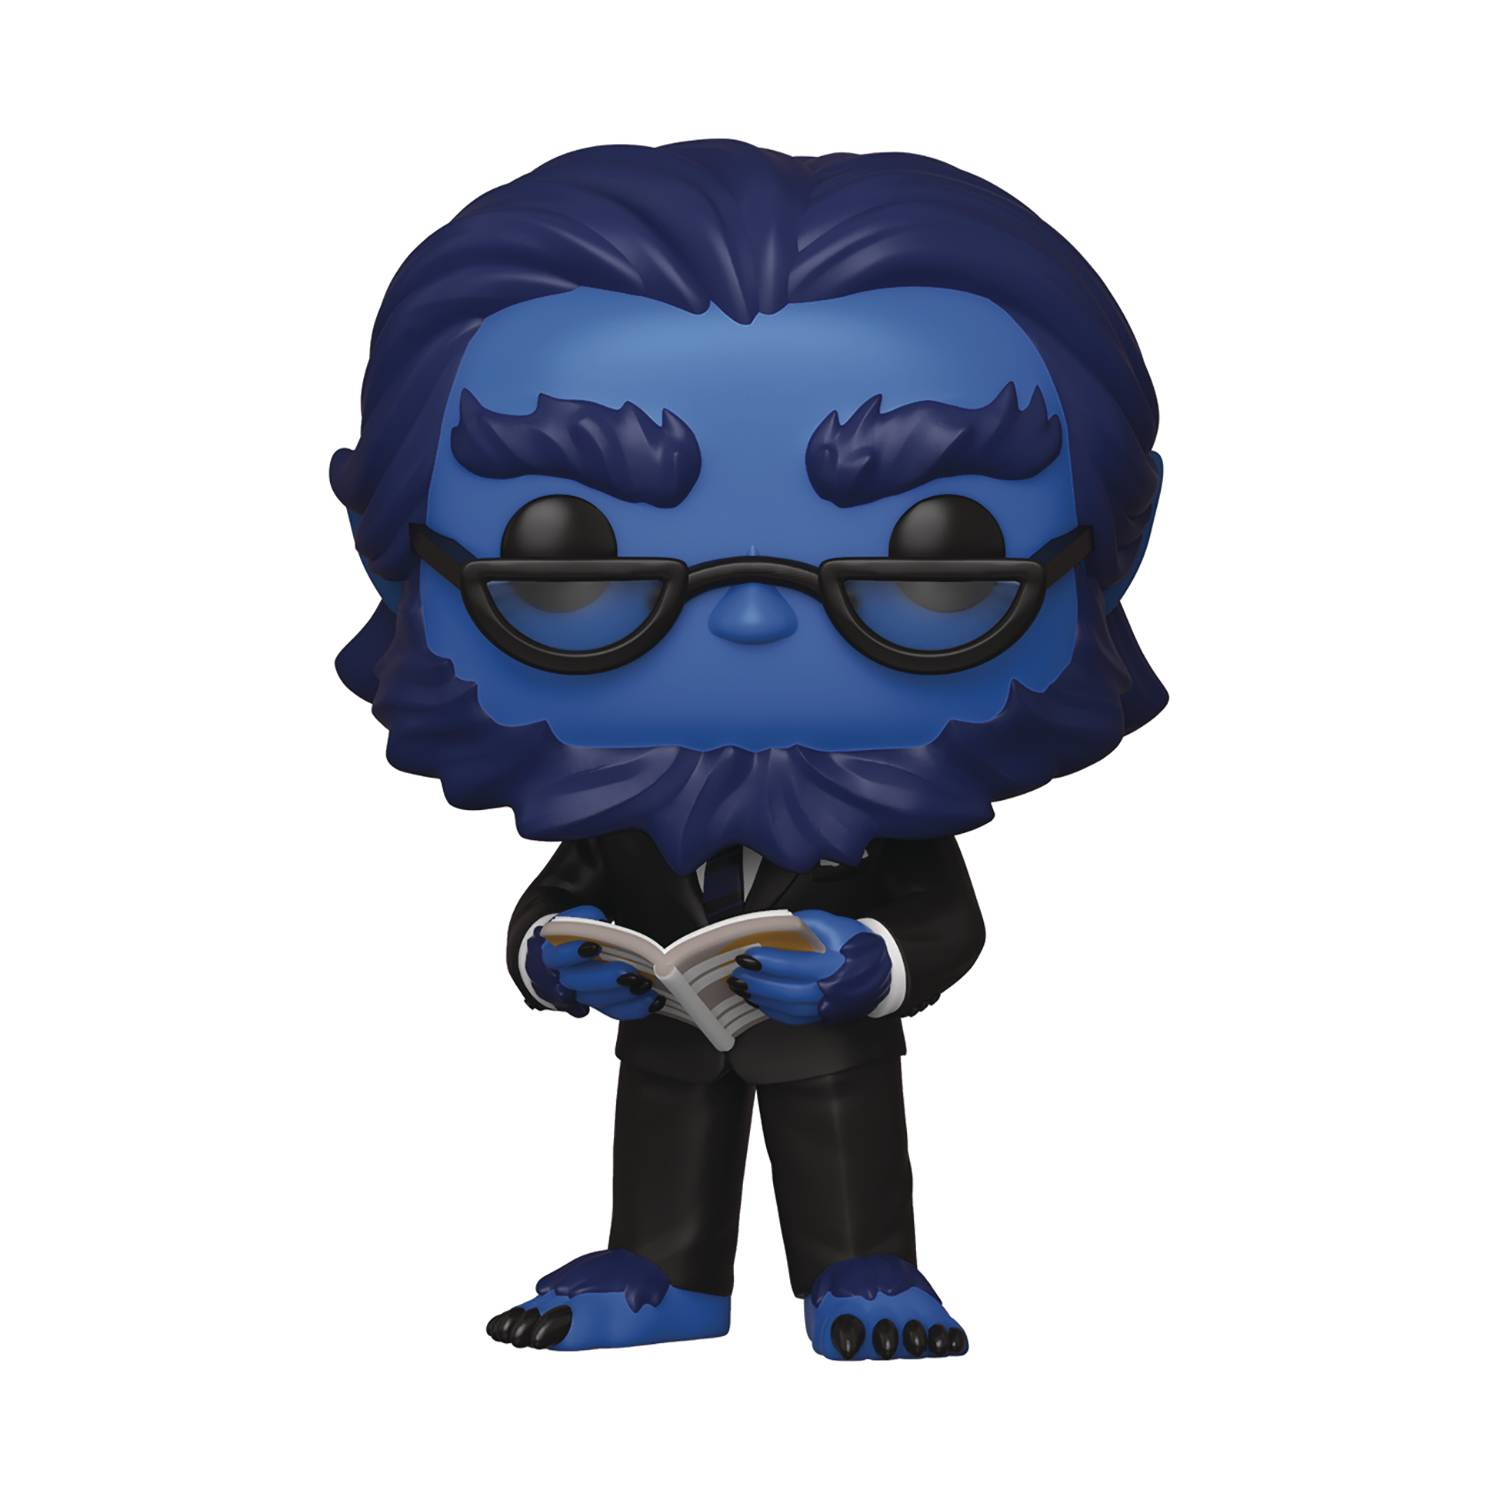 POP MARVEL X-MEN 20TH BEAST VIN FIGURE (C: 1-1-2)